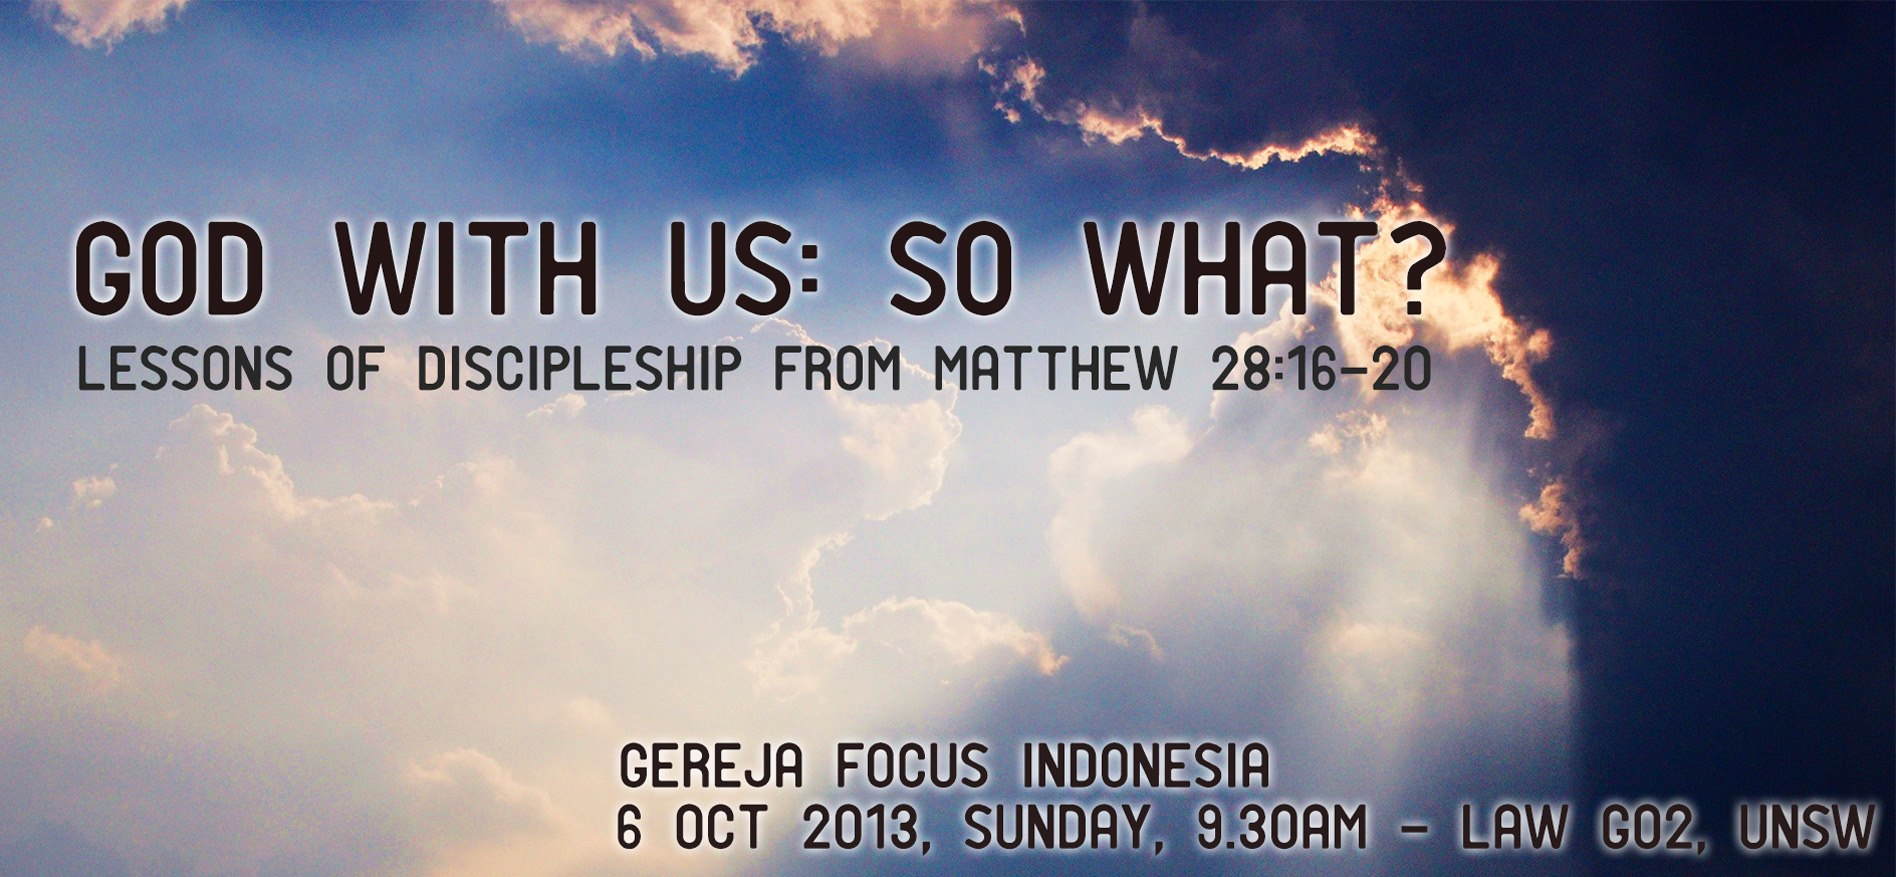 God with us so what